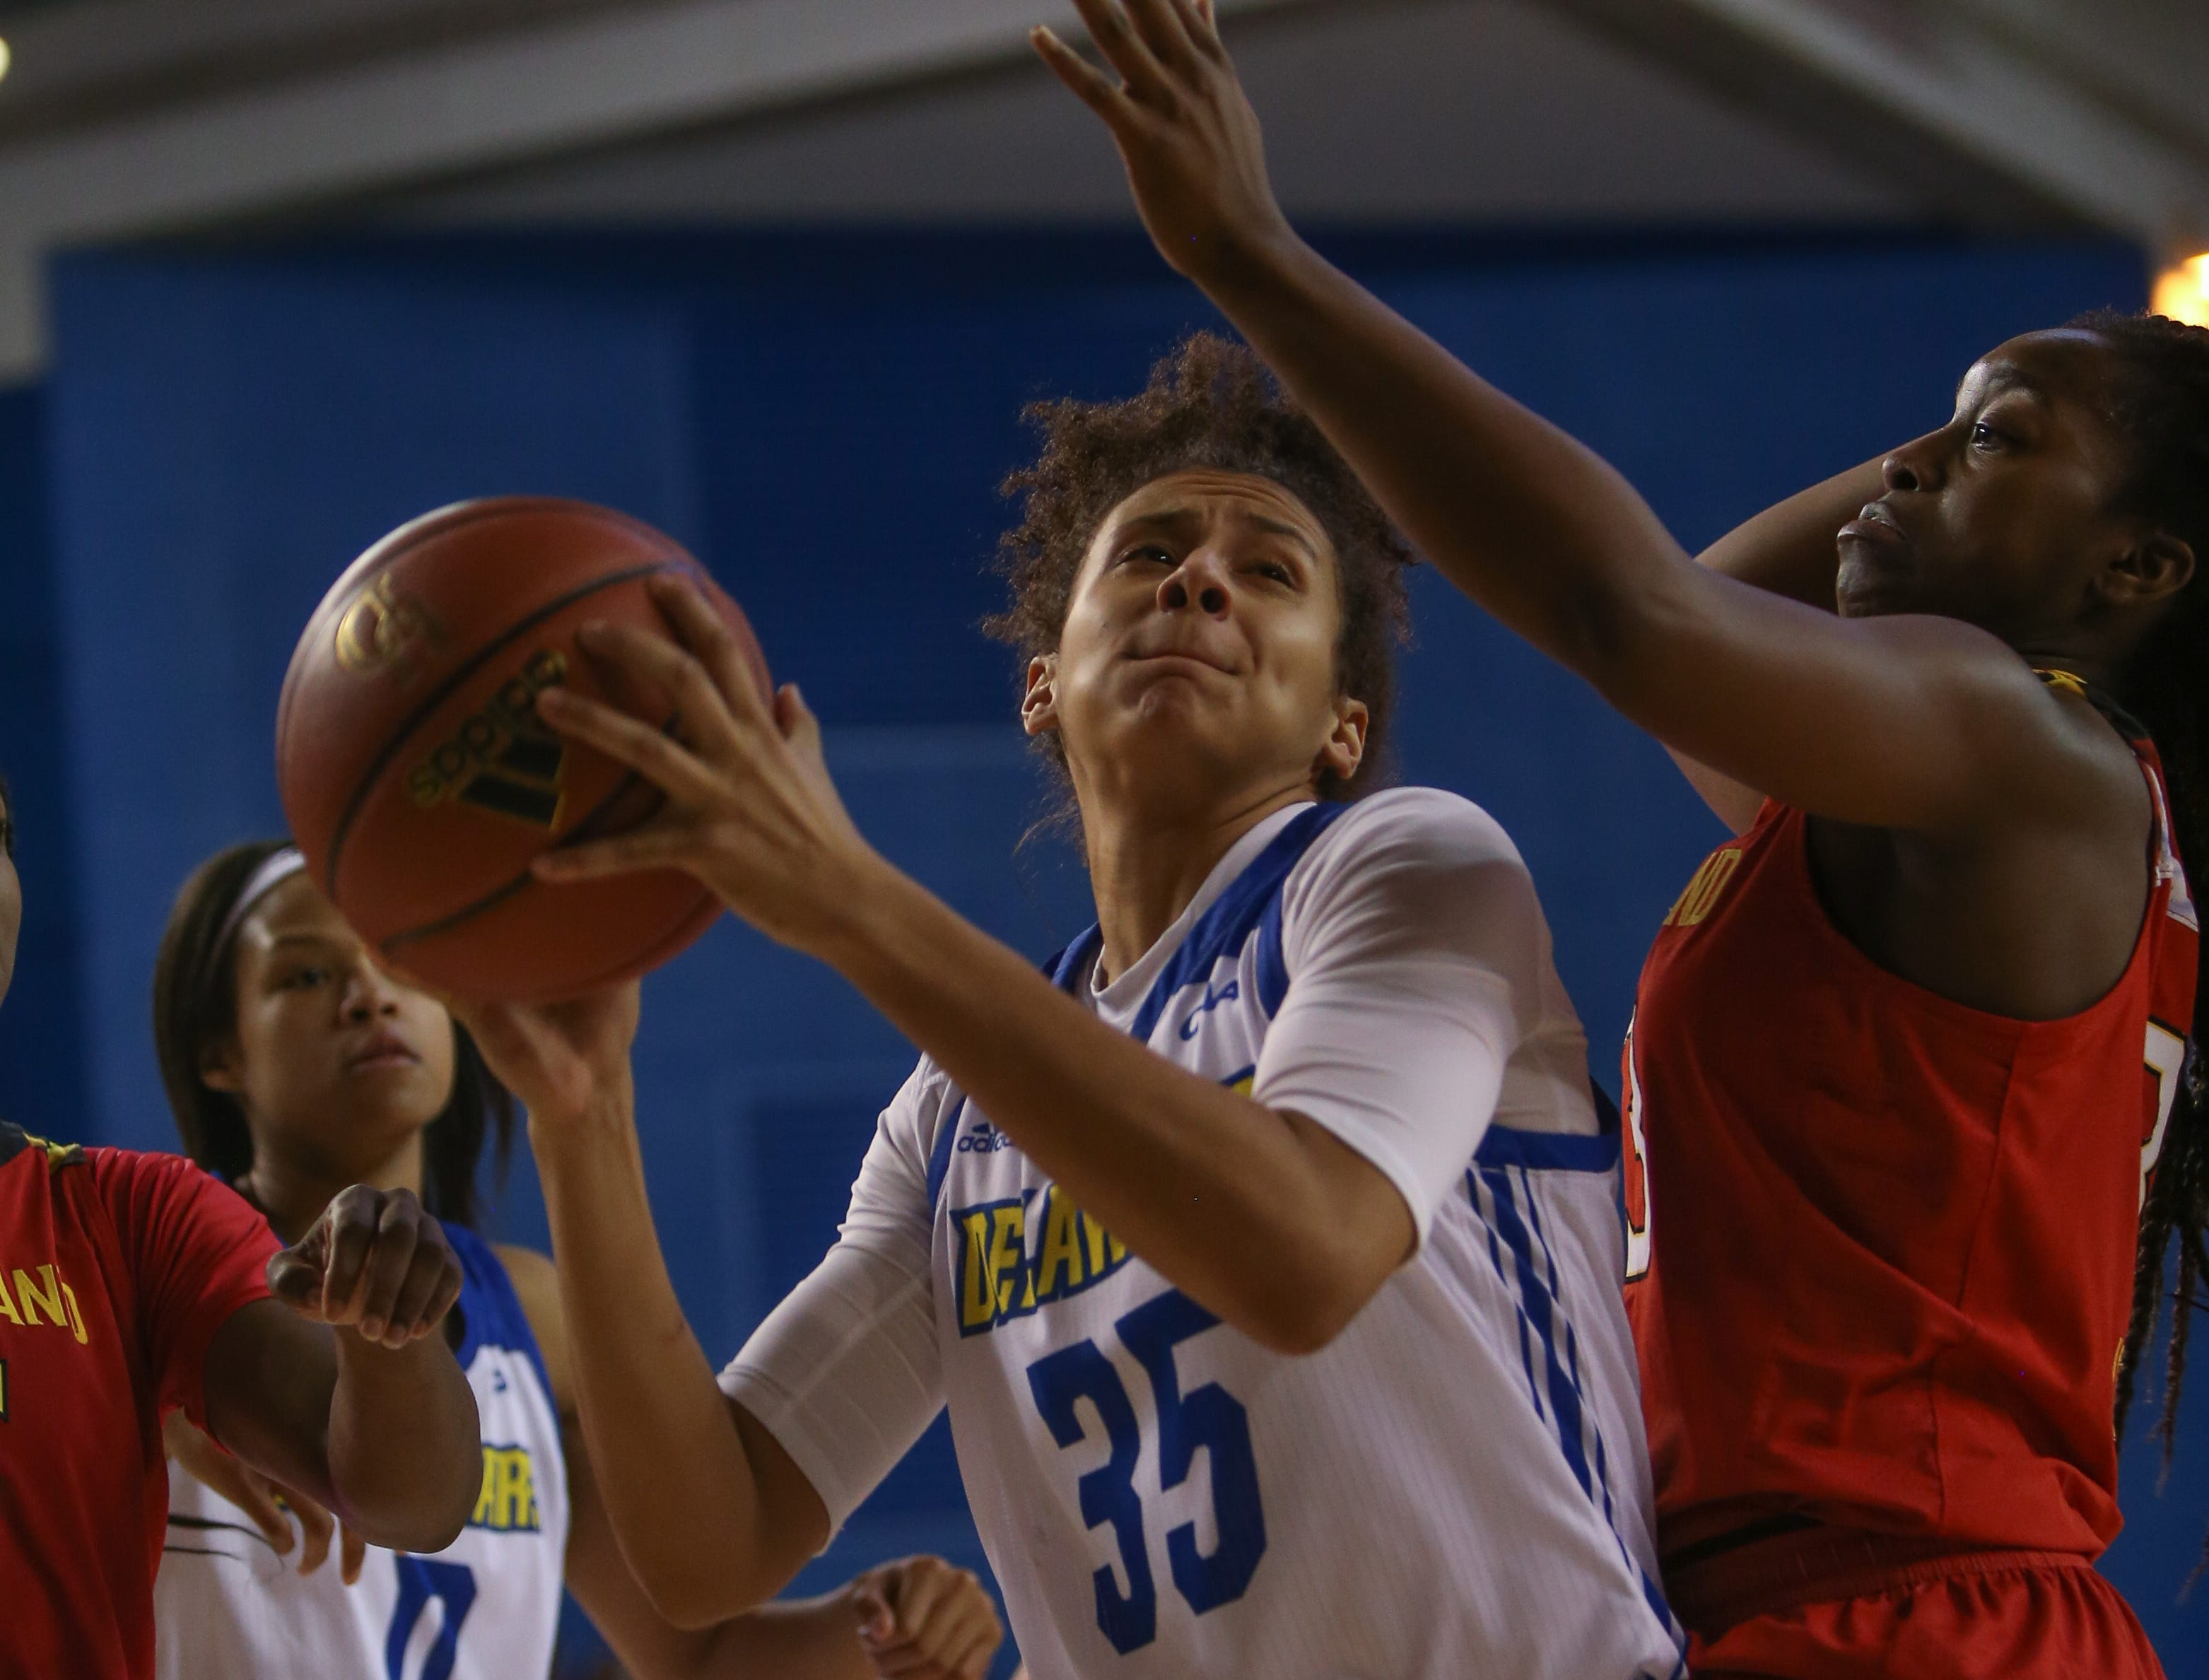 Delaware guard Alison Lewis secures the rebound. The University of Delaware women's basketball team falls to No. 5 University of Maryland 77-53 at the Bob Carpenter Center Thursday.